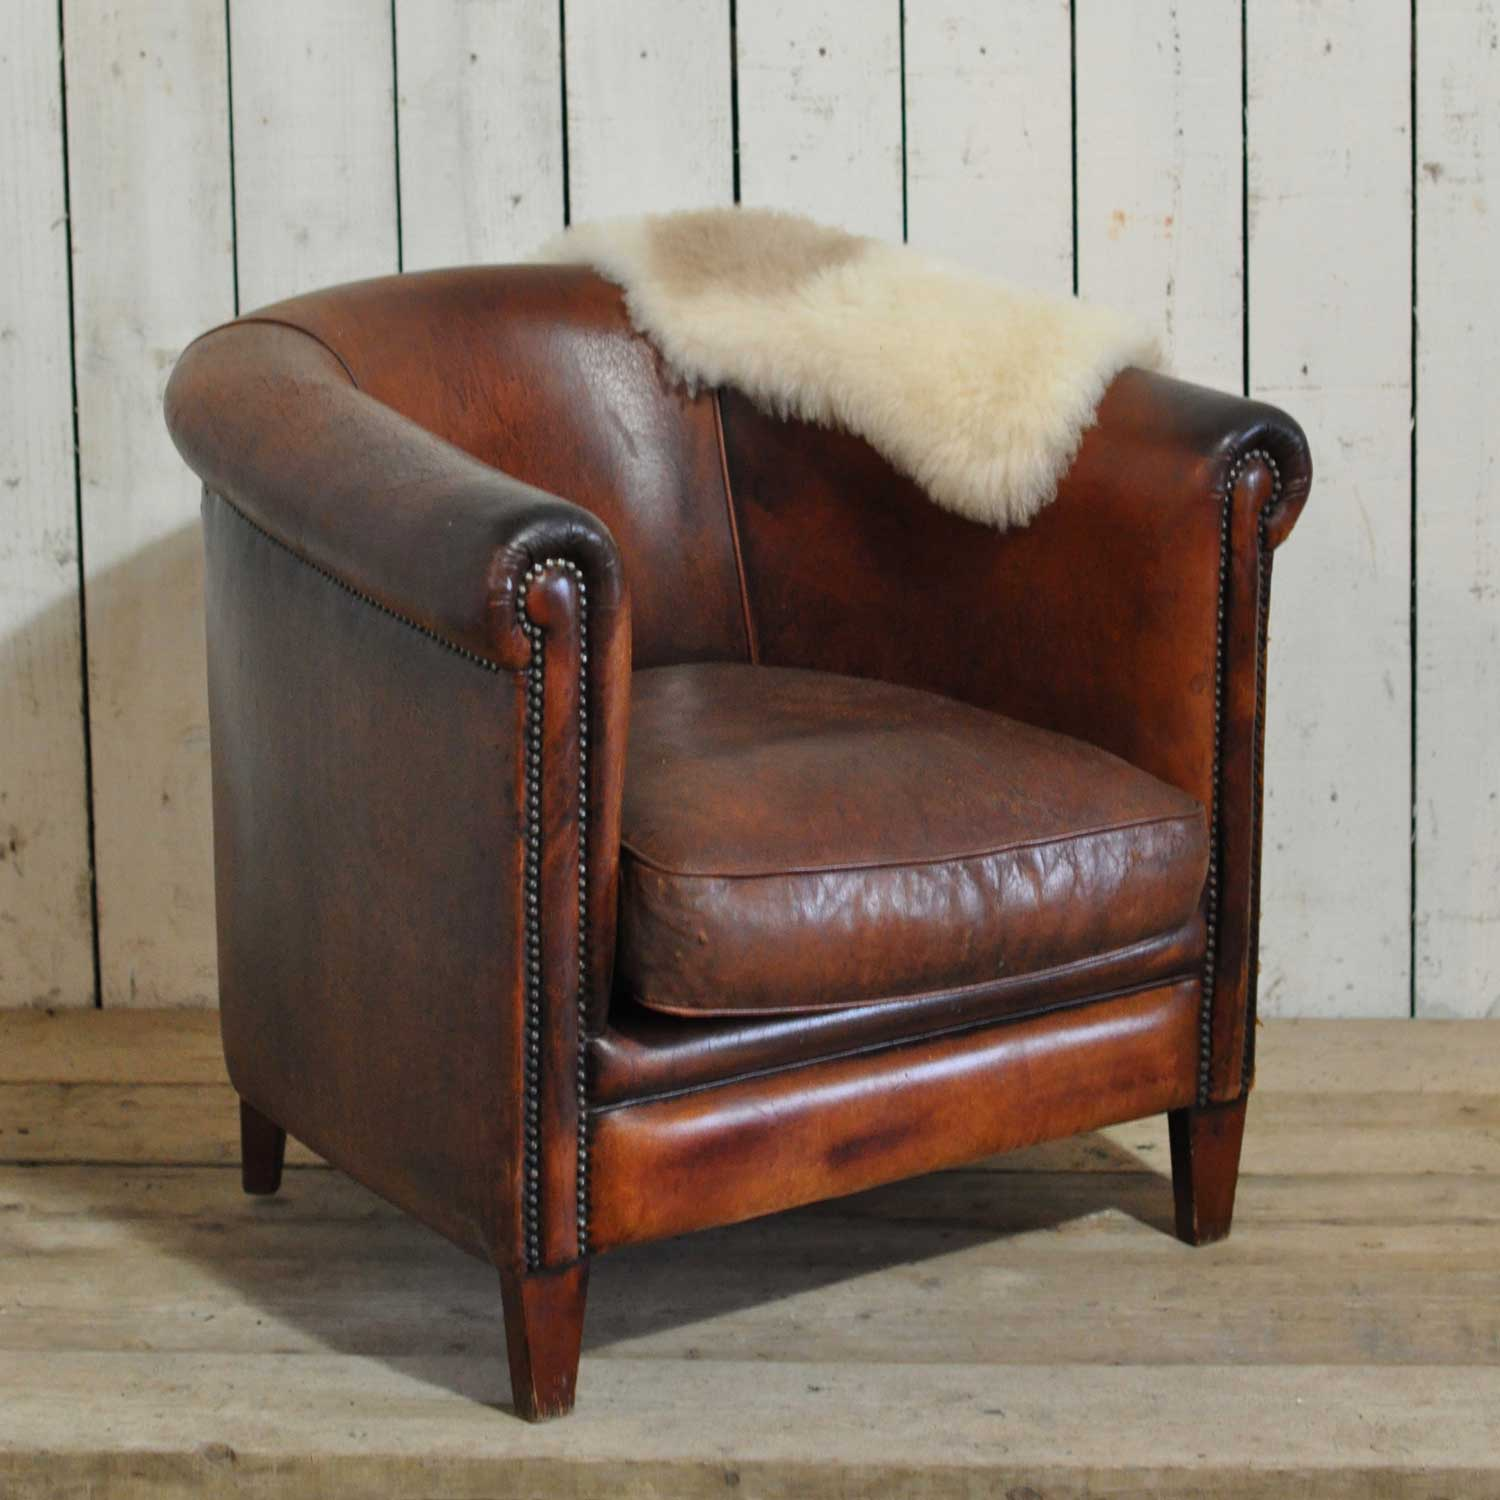 Vintage Worn French Leather Club Chair With Arms - Home ...